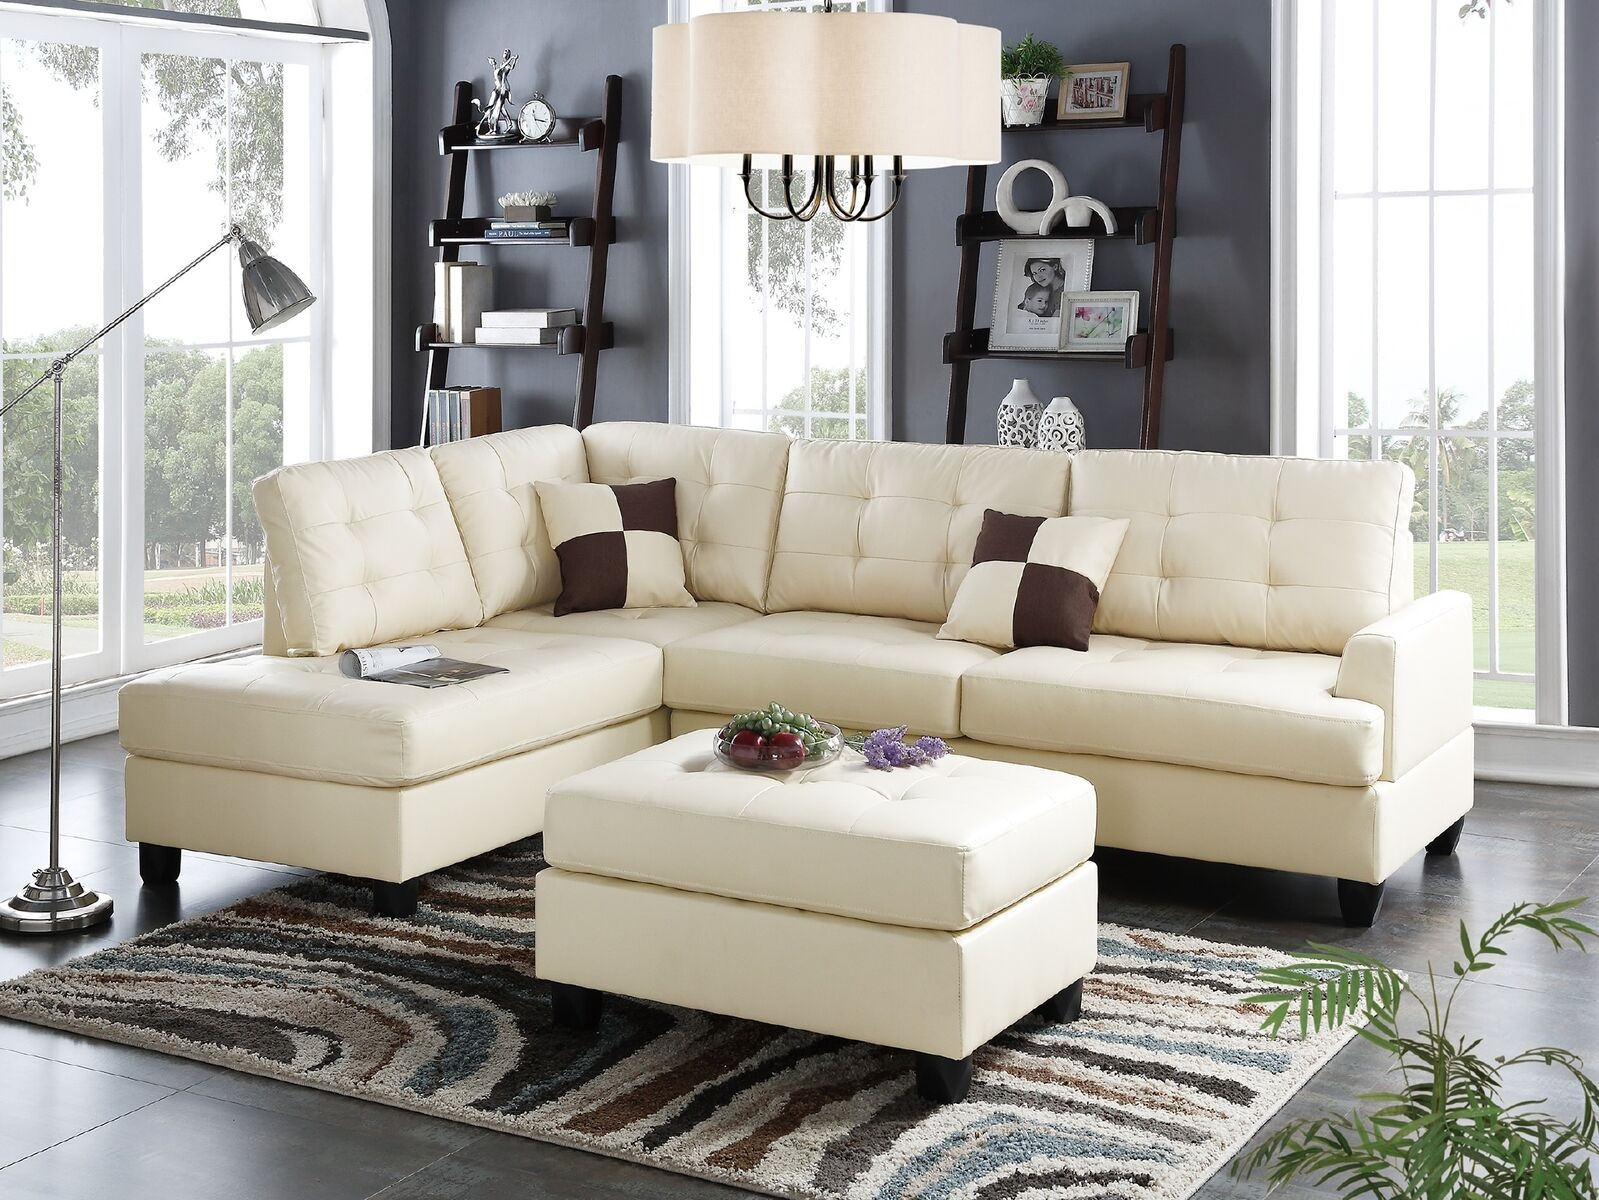 Classic Beige Color Faux Leather Sectional Sofa Chaise Ottoman 3pcs Sectionals Bobkona Living Room Furniture